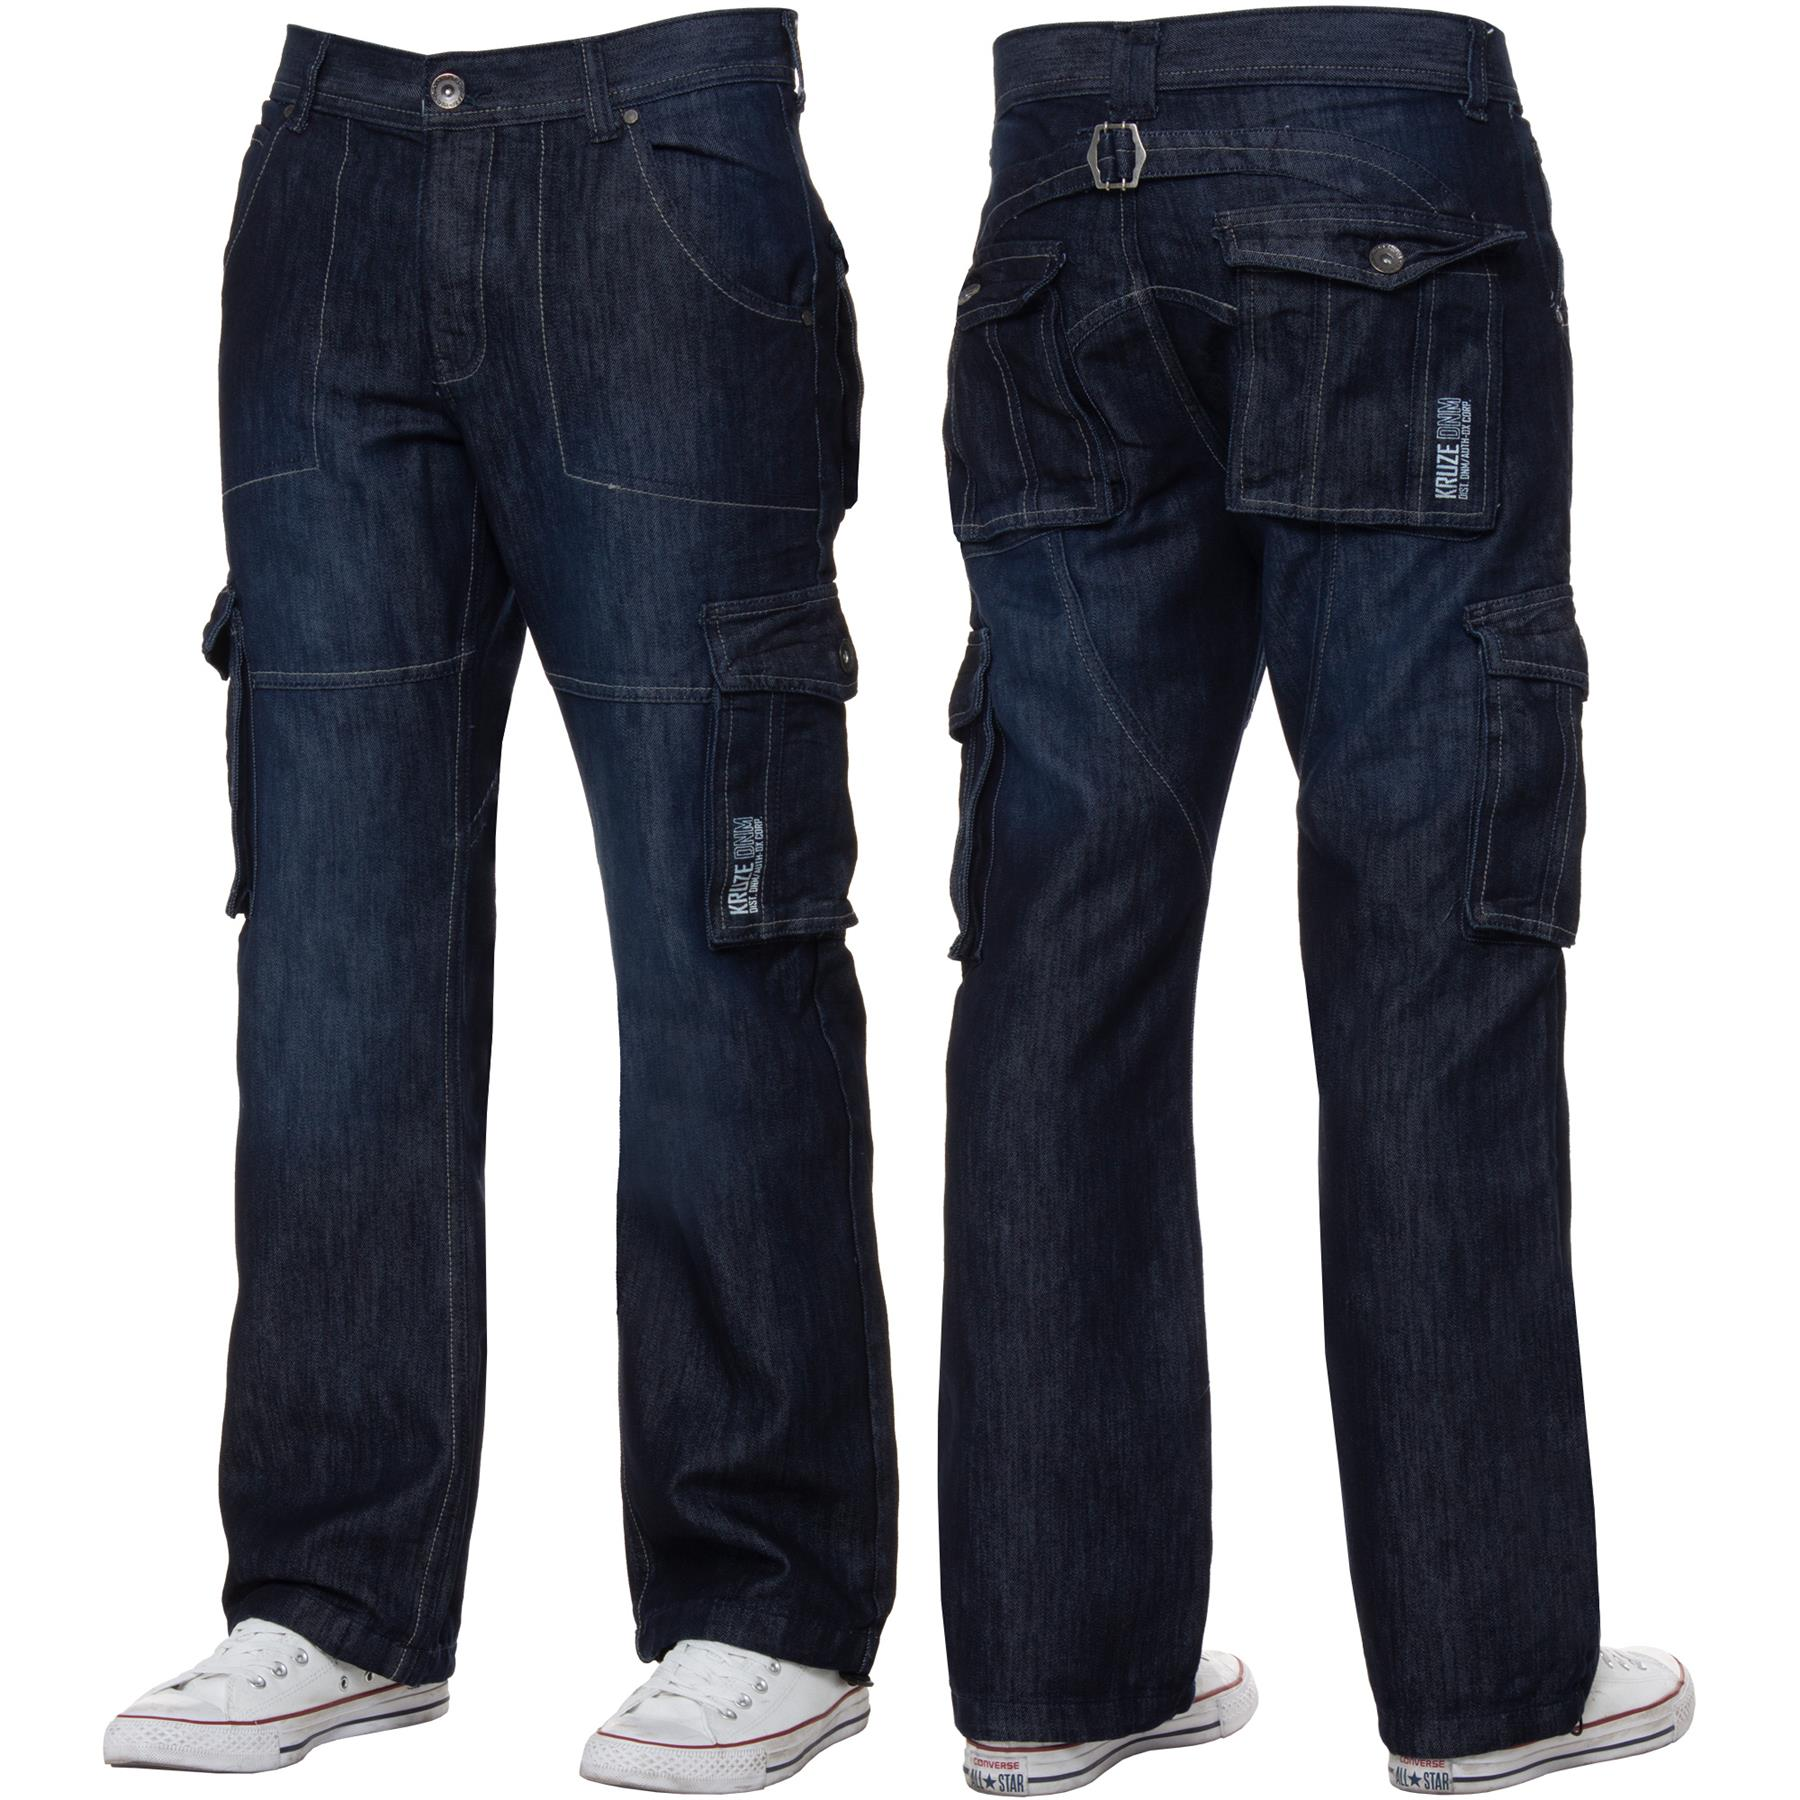 Kruze-Mens-Cargo-Combat-Jeans-Casual-Work-Denim-Pants-Big-Tall-All-Waist-Sizes thumbnail 15